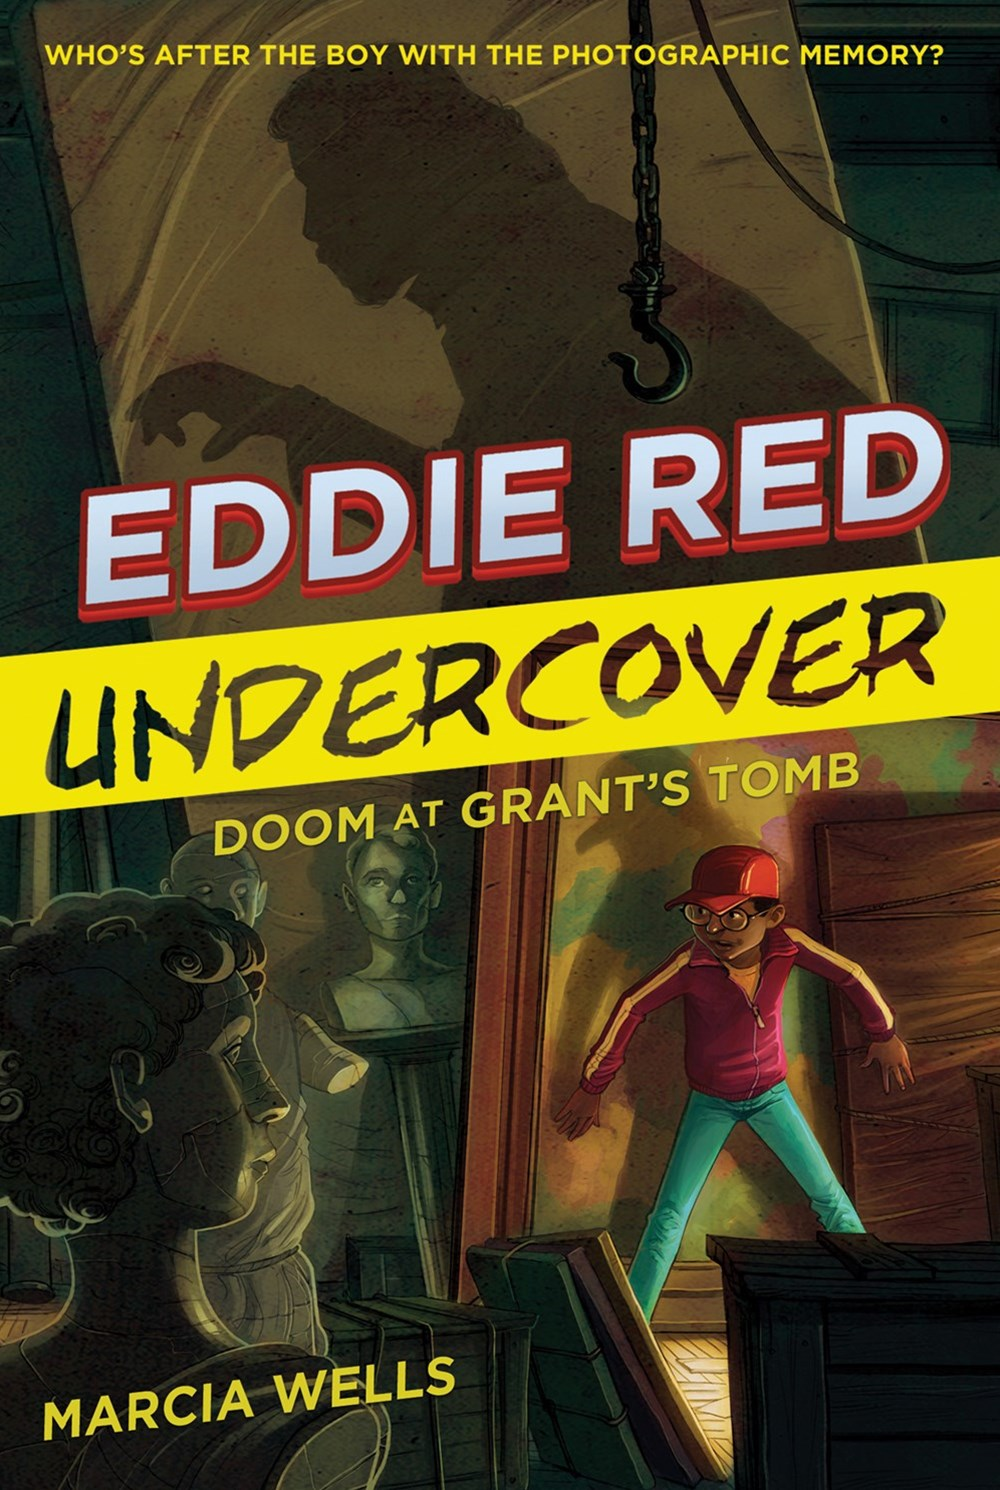 Eddie Red: Undercover:  Doom at Grant's Tomb